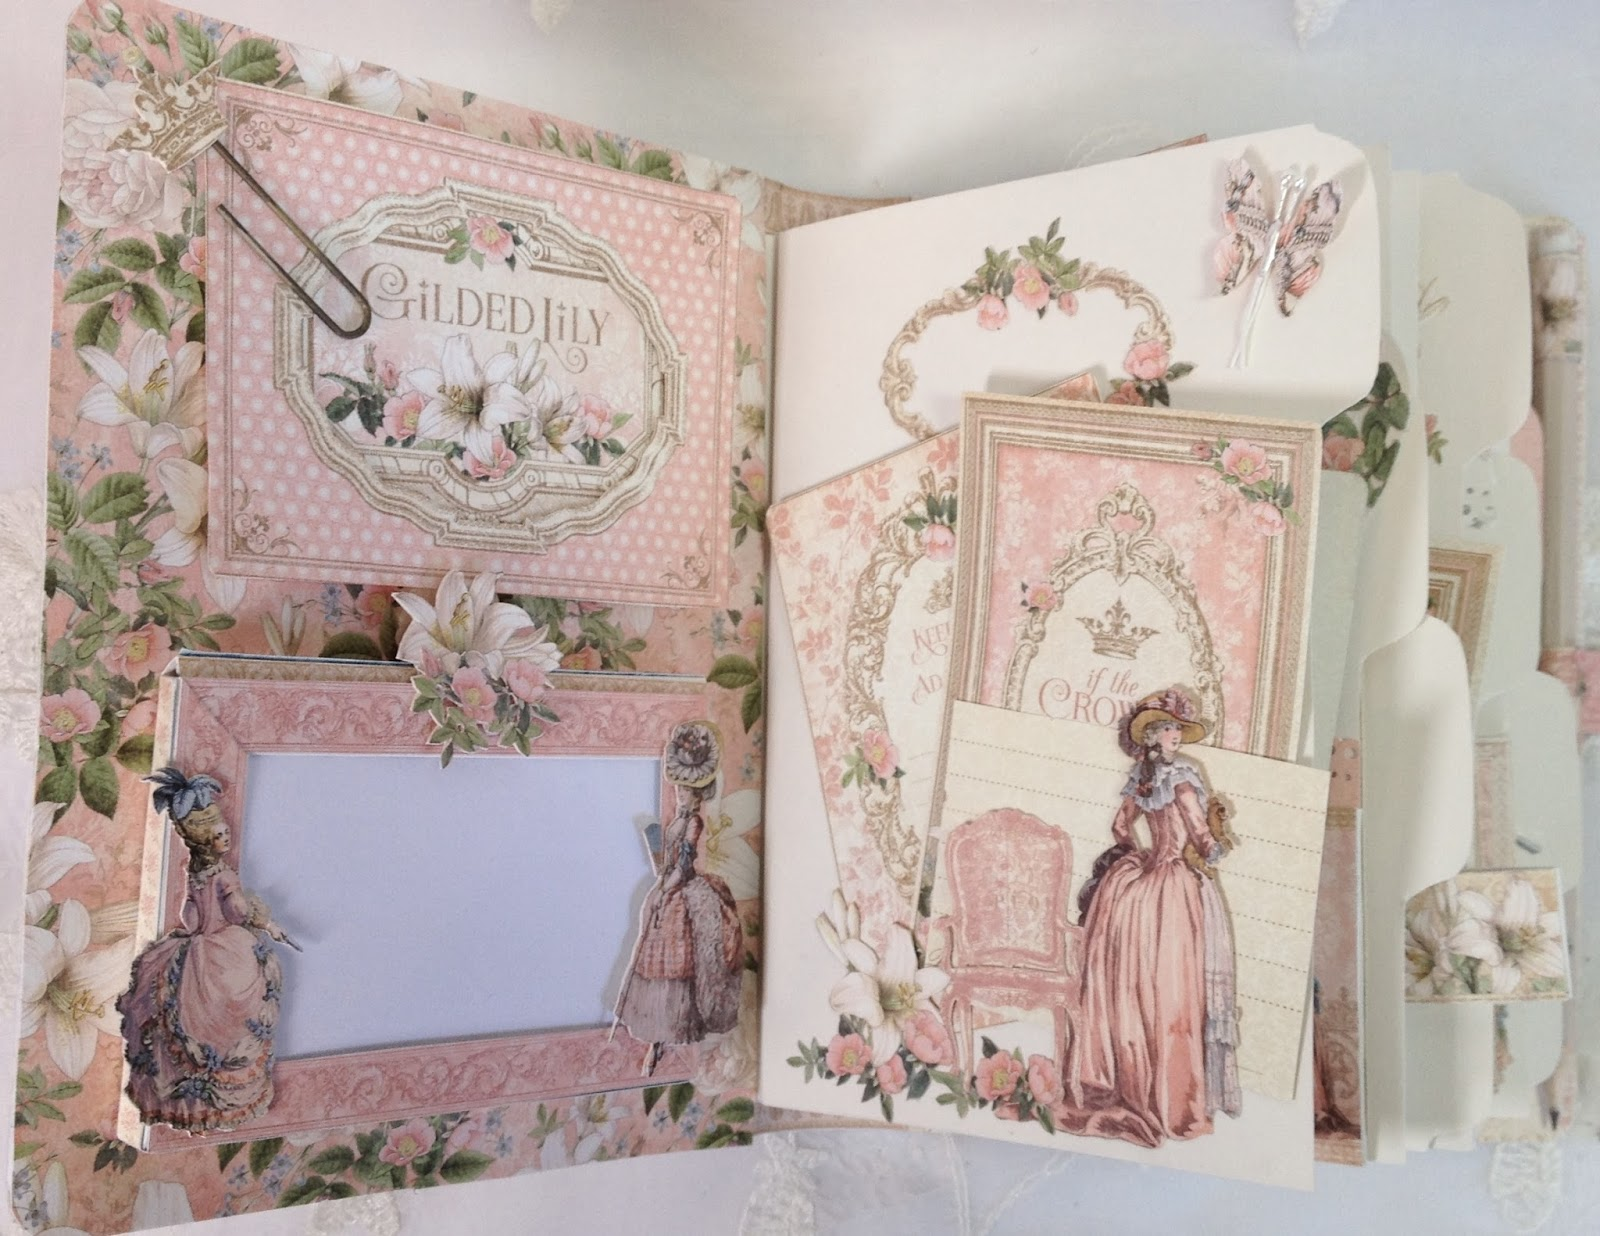 How to scrapbook journal - An Error Occurred